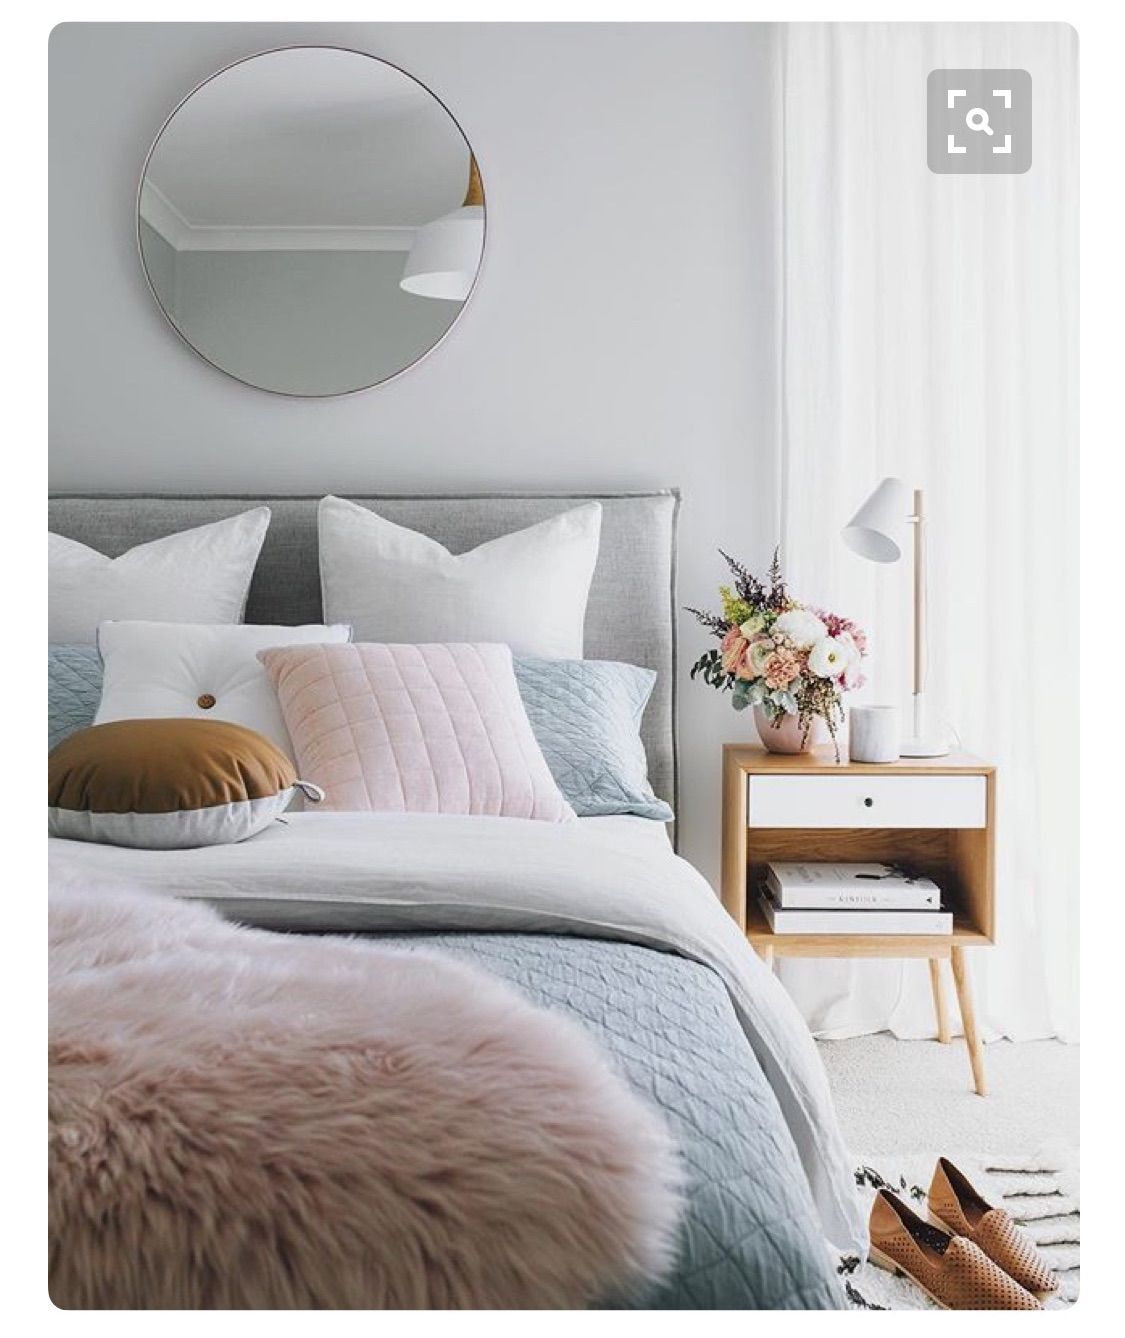 Summer Bedroom Style And Design Ideas: The Complete Guide To Decorating Your Room